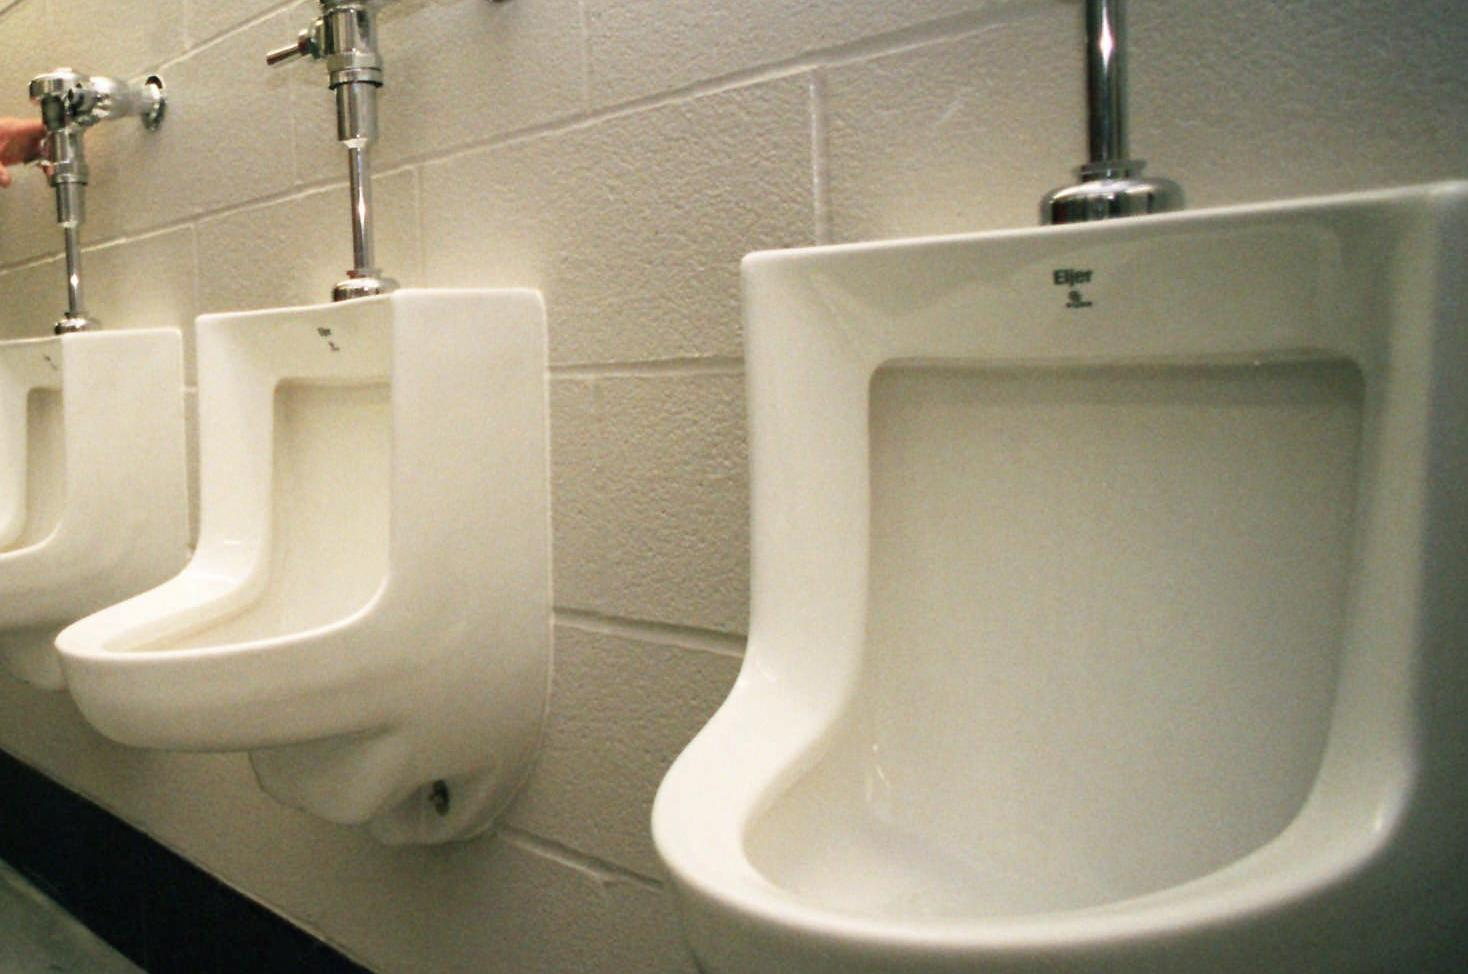 Mississippi would combat fake urine with 'Urine Trouble' law   The ...